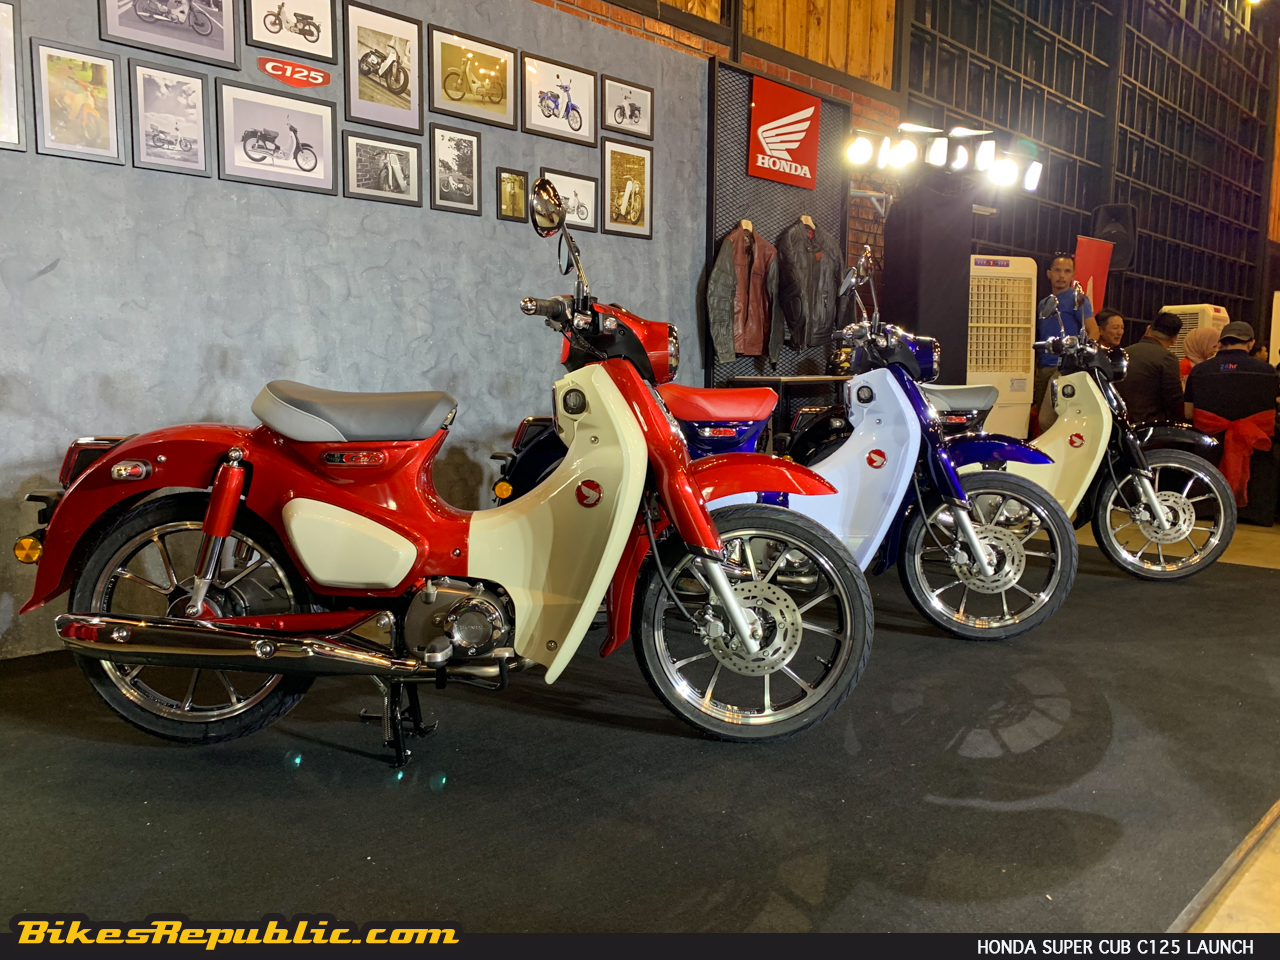 honda super cub c125 honda cb1100rs honda cbr1000rr fireblade sp launched bikesrepublic. Black Bedroom Furniture Sets. Home Design Ideas